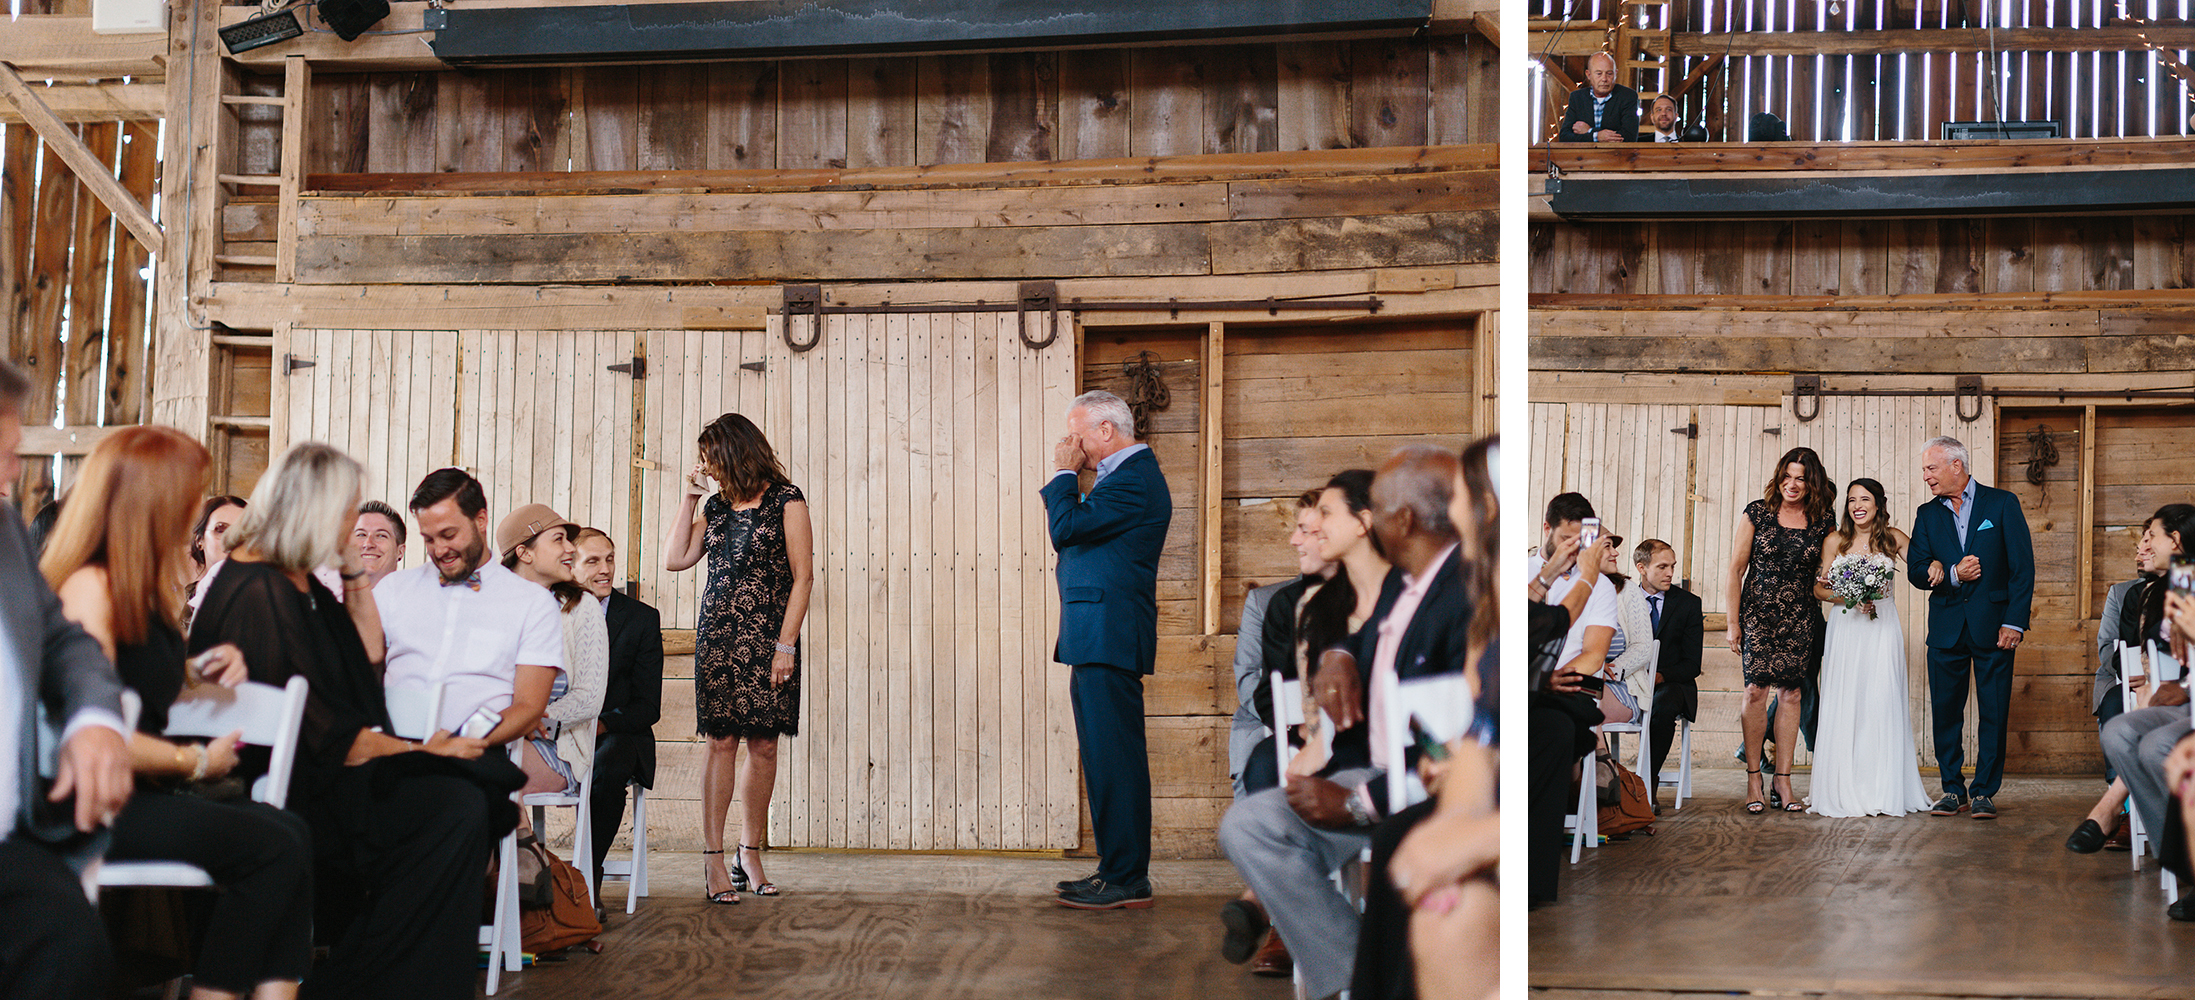 19-cambium-farms-wedding-ryanne-hollies-photography-gay-wedding-lgbtq-trendy-cool-badass-junebug-weddings-inspiration-ceremony-in-old-barn-parents-laughing-emotional.jpg